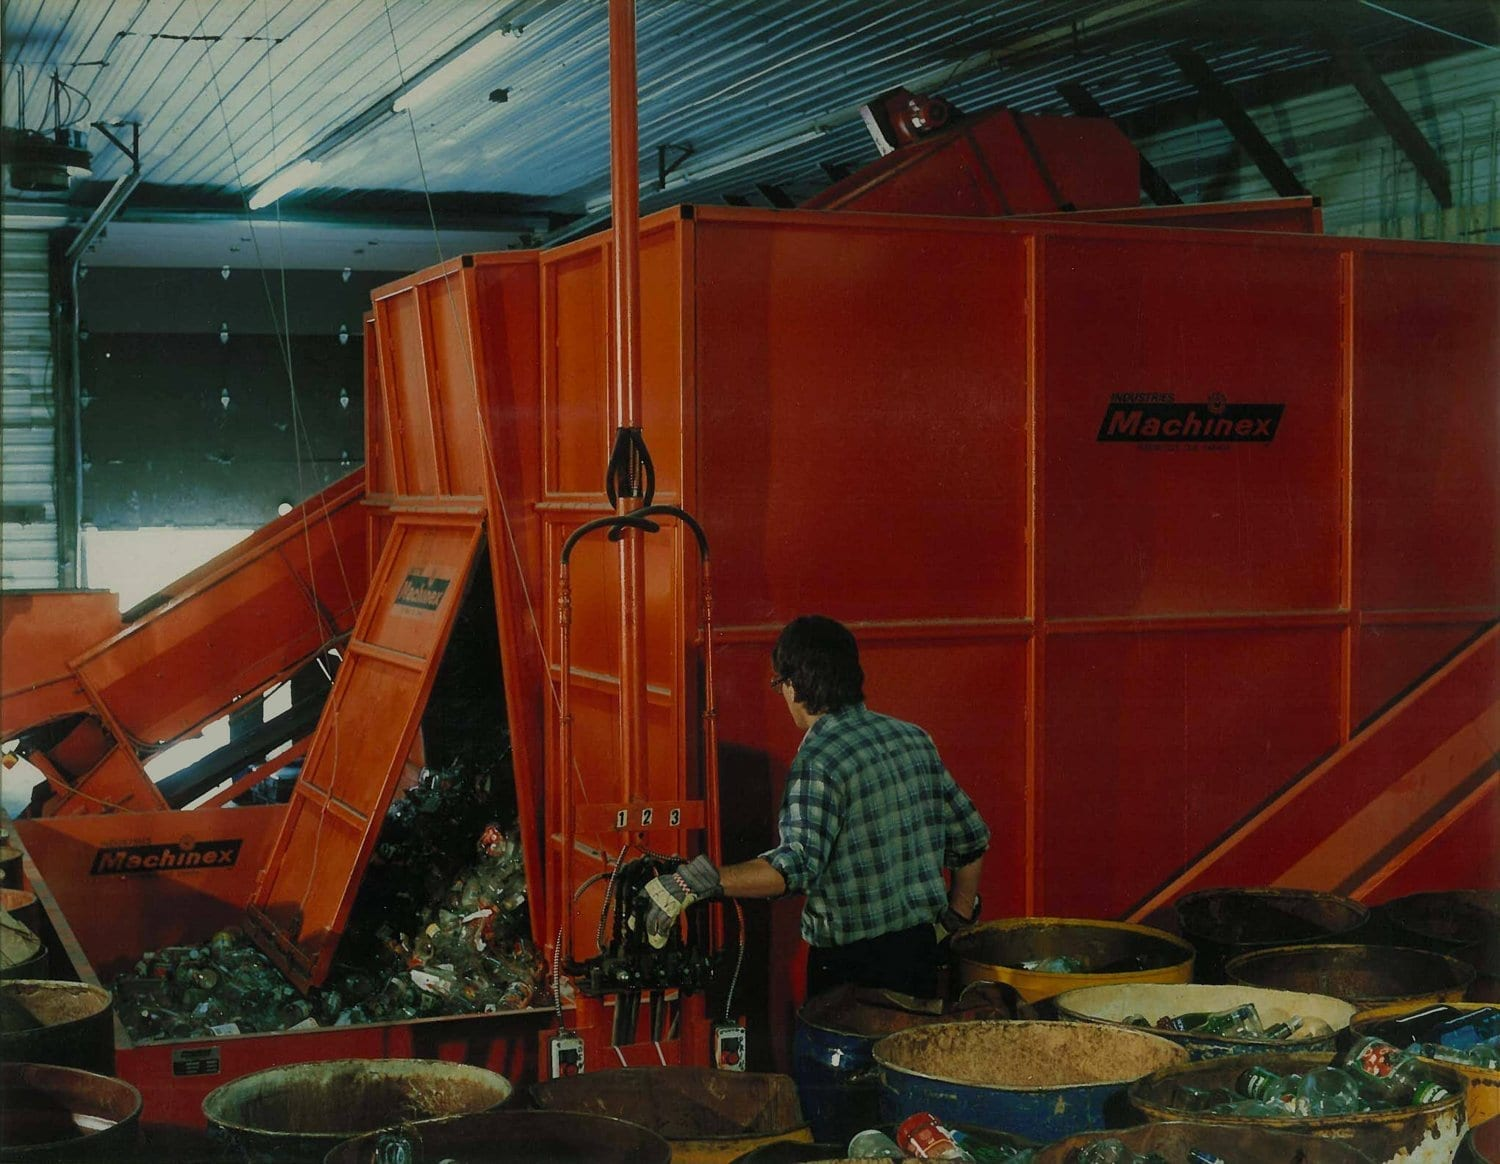 Machinex's first recycling sorting center, Victoriaville, QC, 1985.